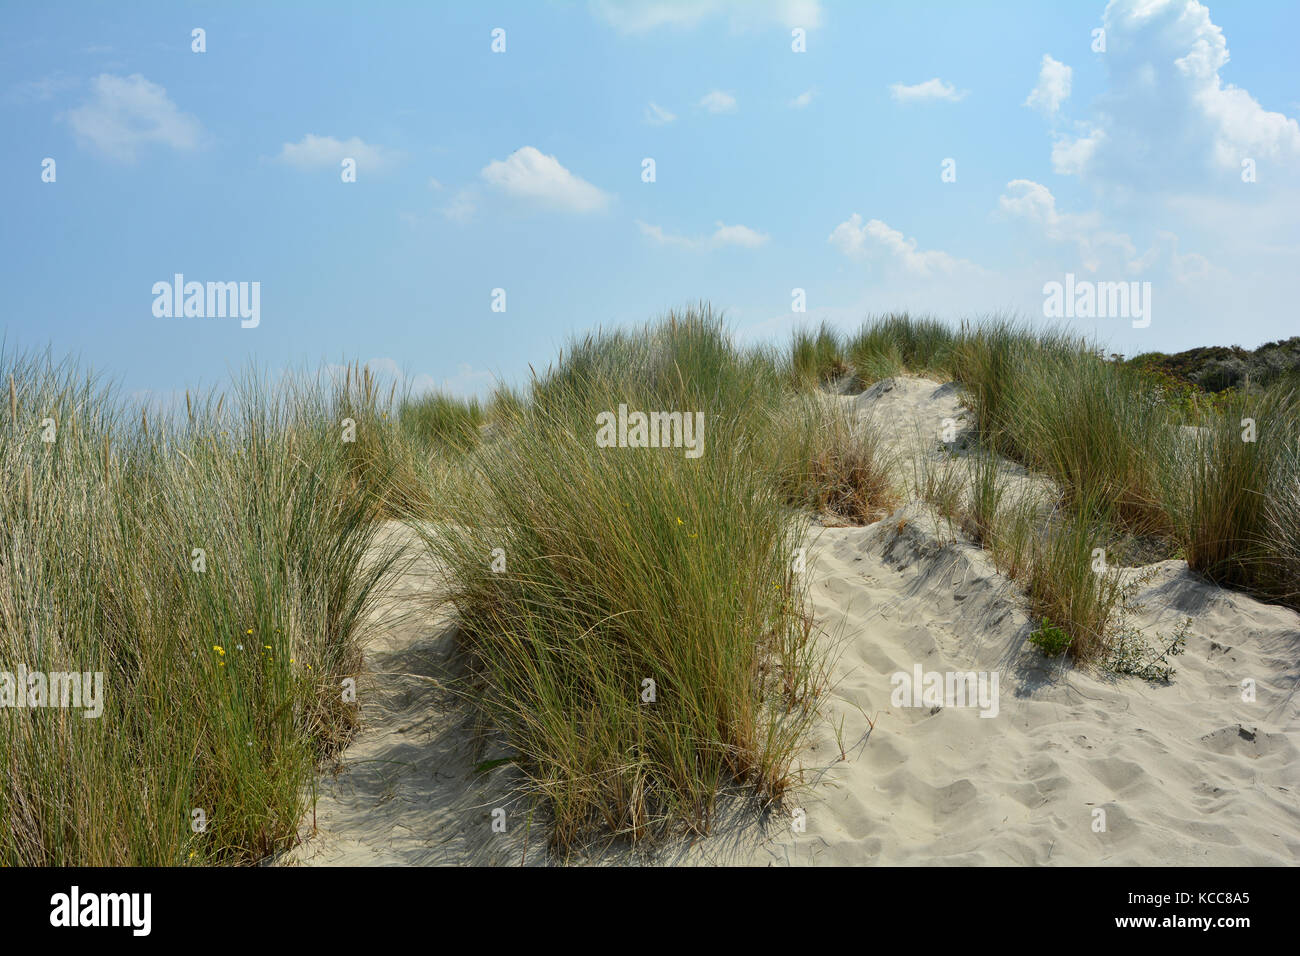 Beach oat in the sandy dunes on the North Sea coast  in the Netherlands on Zeeland on the island Schouwen-Duiveland - Stock Image